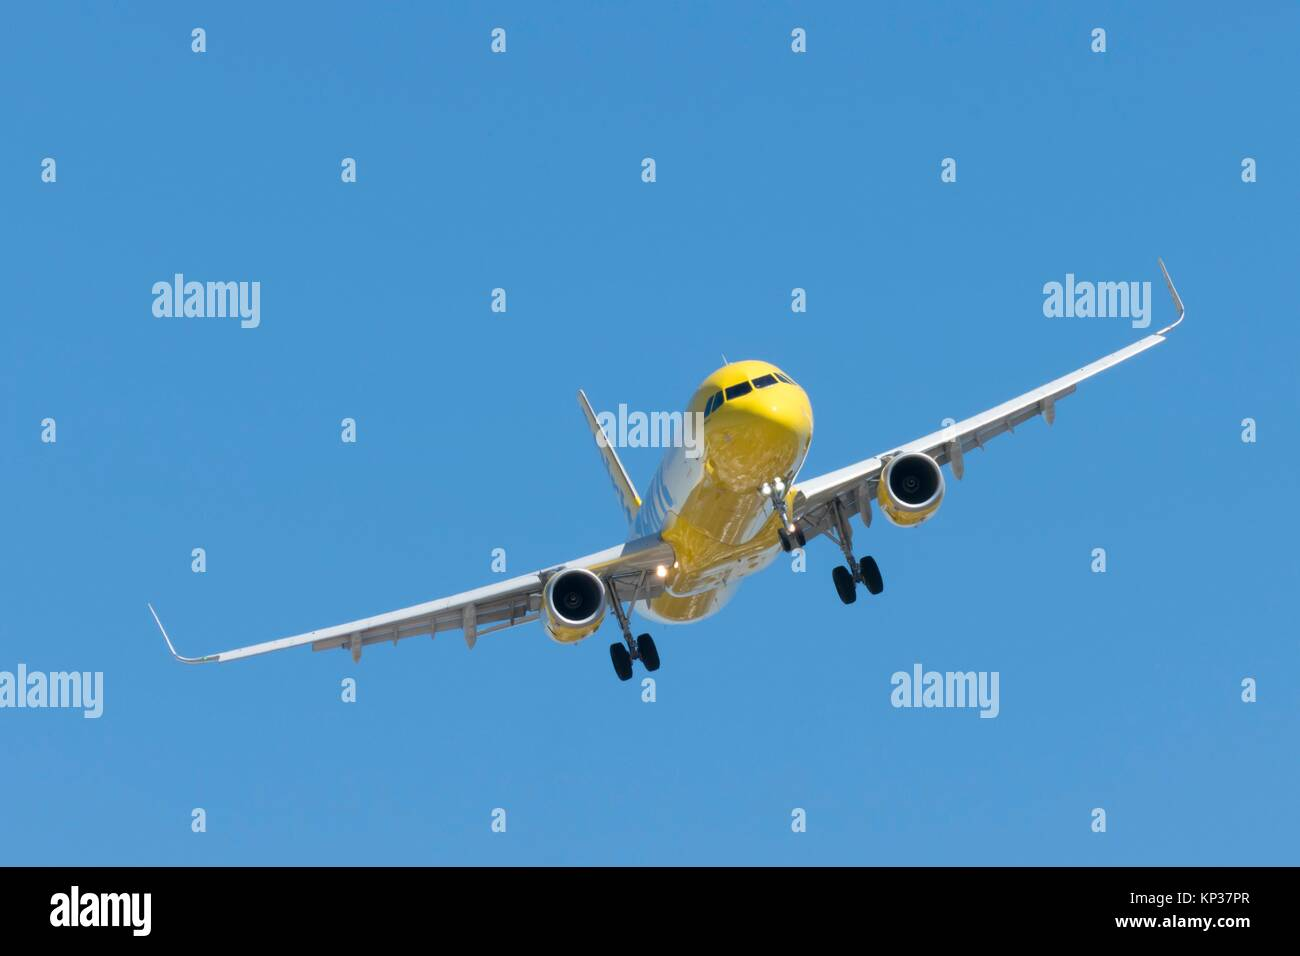 A Jet airplane on final approach to land at San Diego Airport - Stock Image